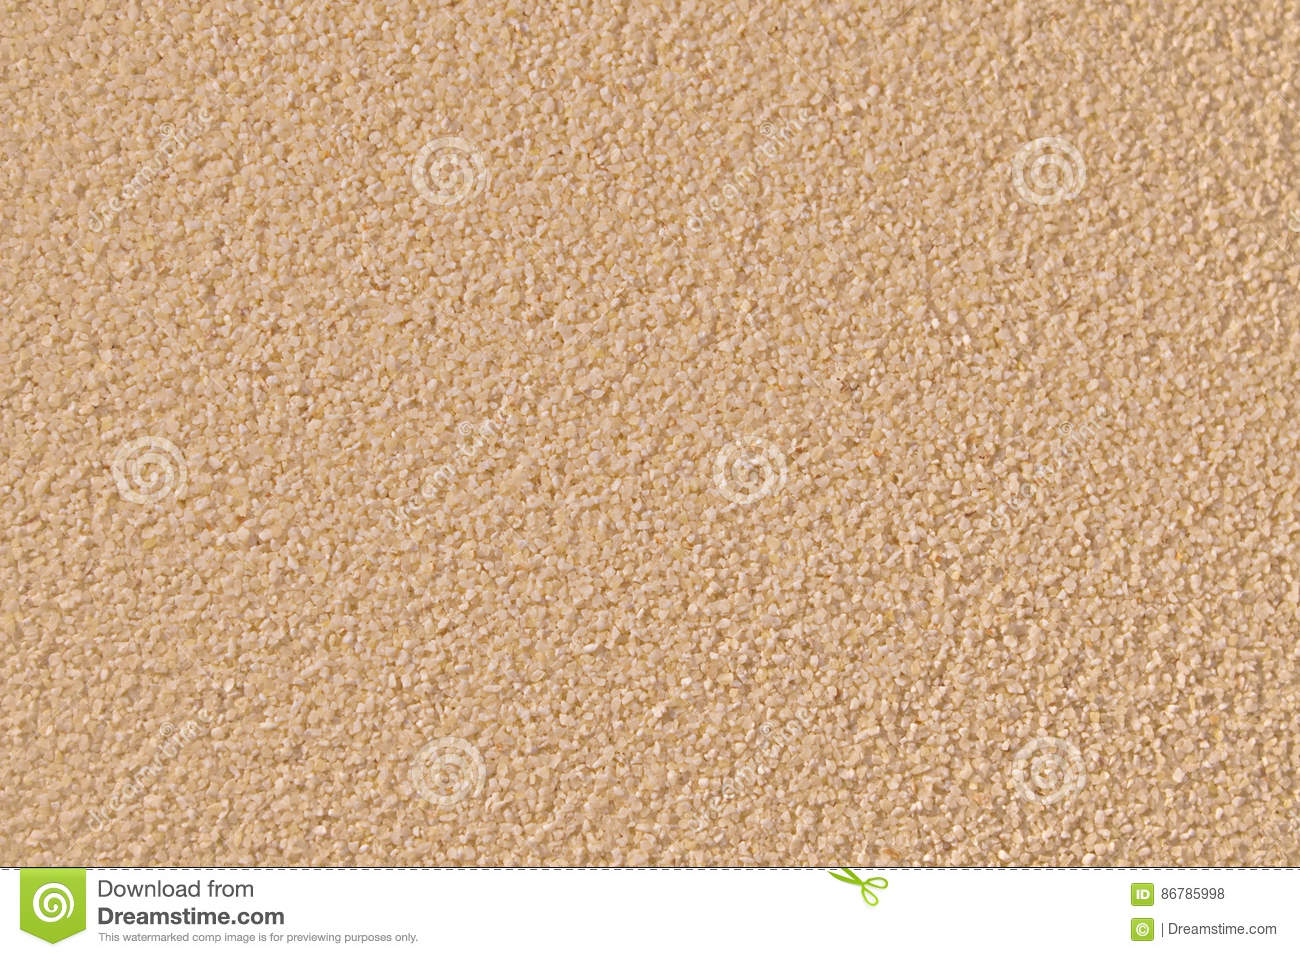 Texture groats stock photo  Image of cereal, grain, porridge